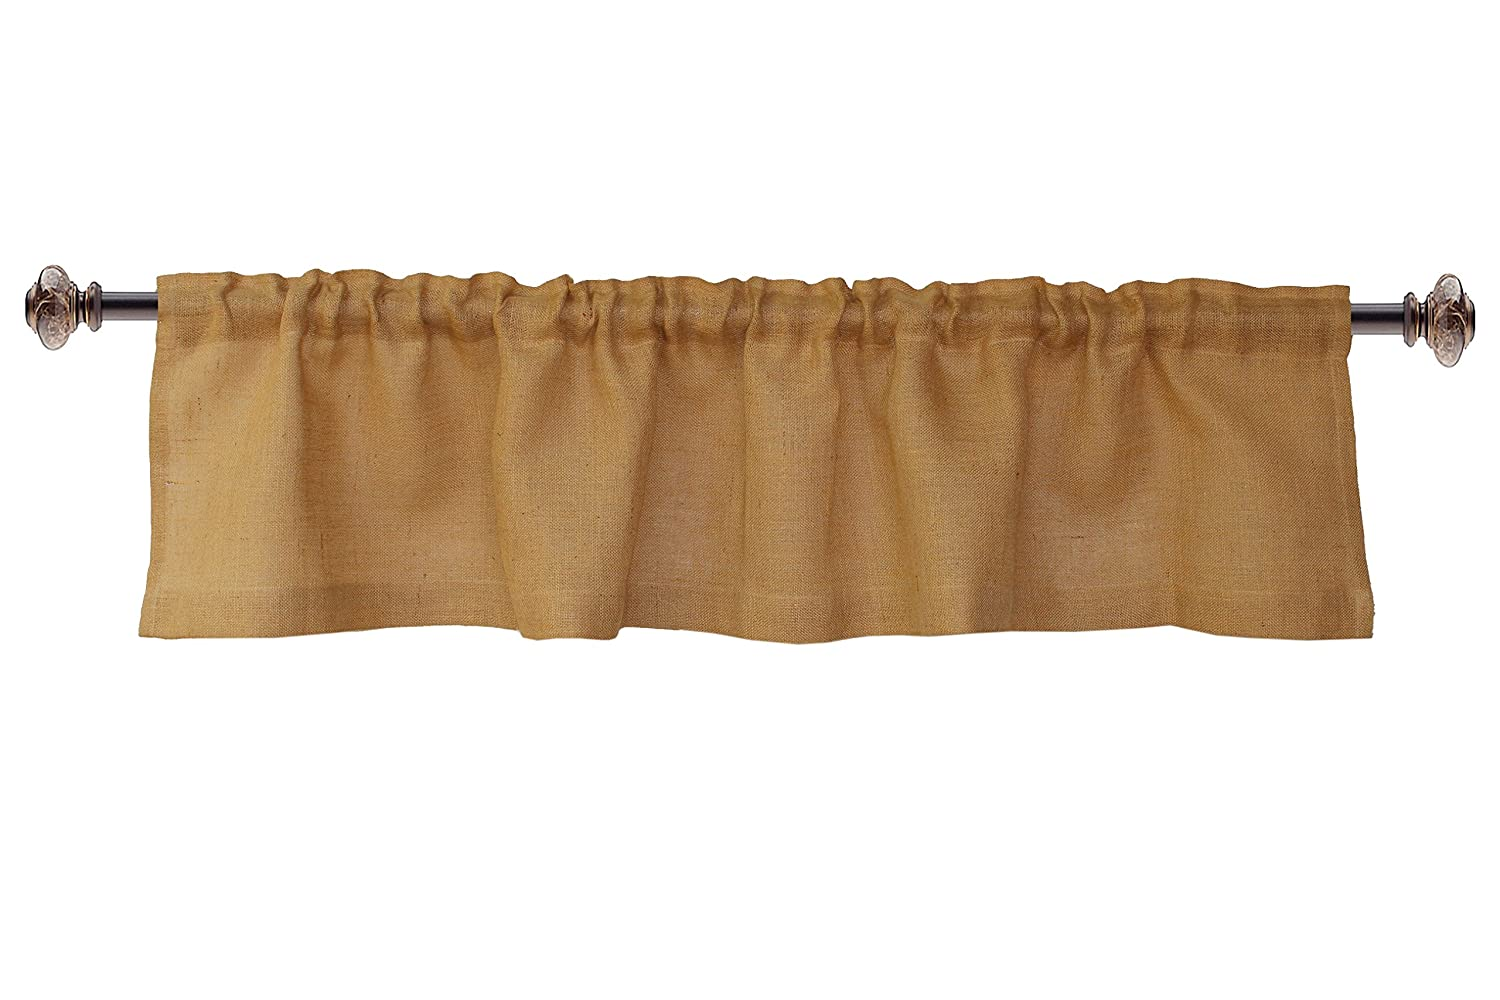 Cotton Craft - 100% Jute Burlap Natural Window Valance - Set of 2 - Size - 16-Inch-by-72-Inch - Made from Eco-Friendly 100% Natural Jute Orient Originals Inc. 81276